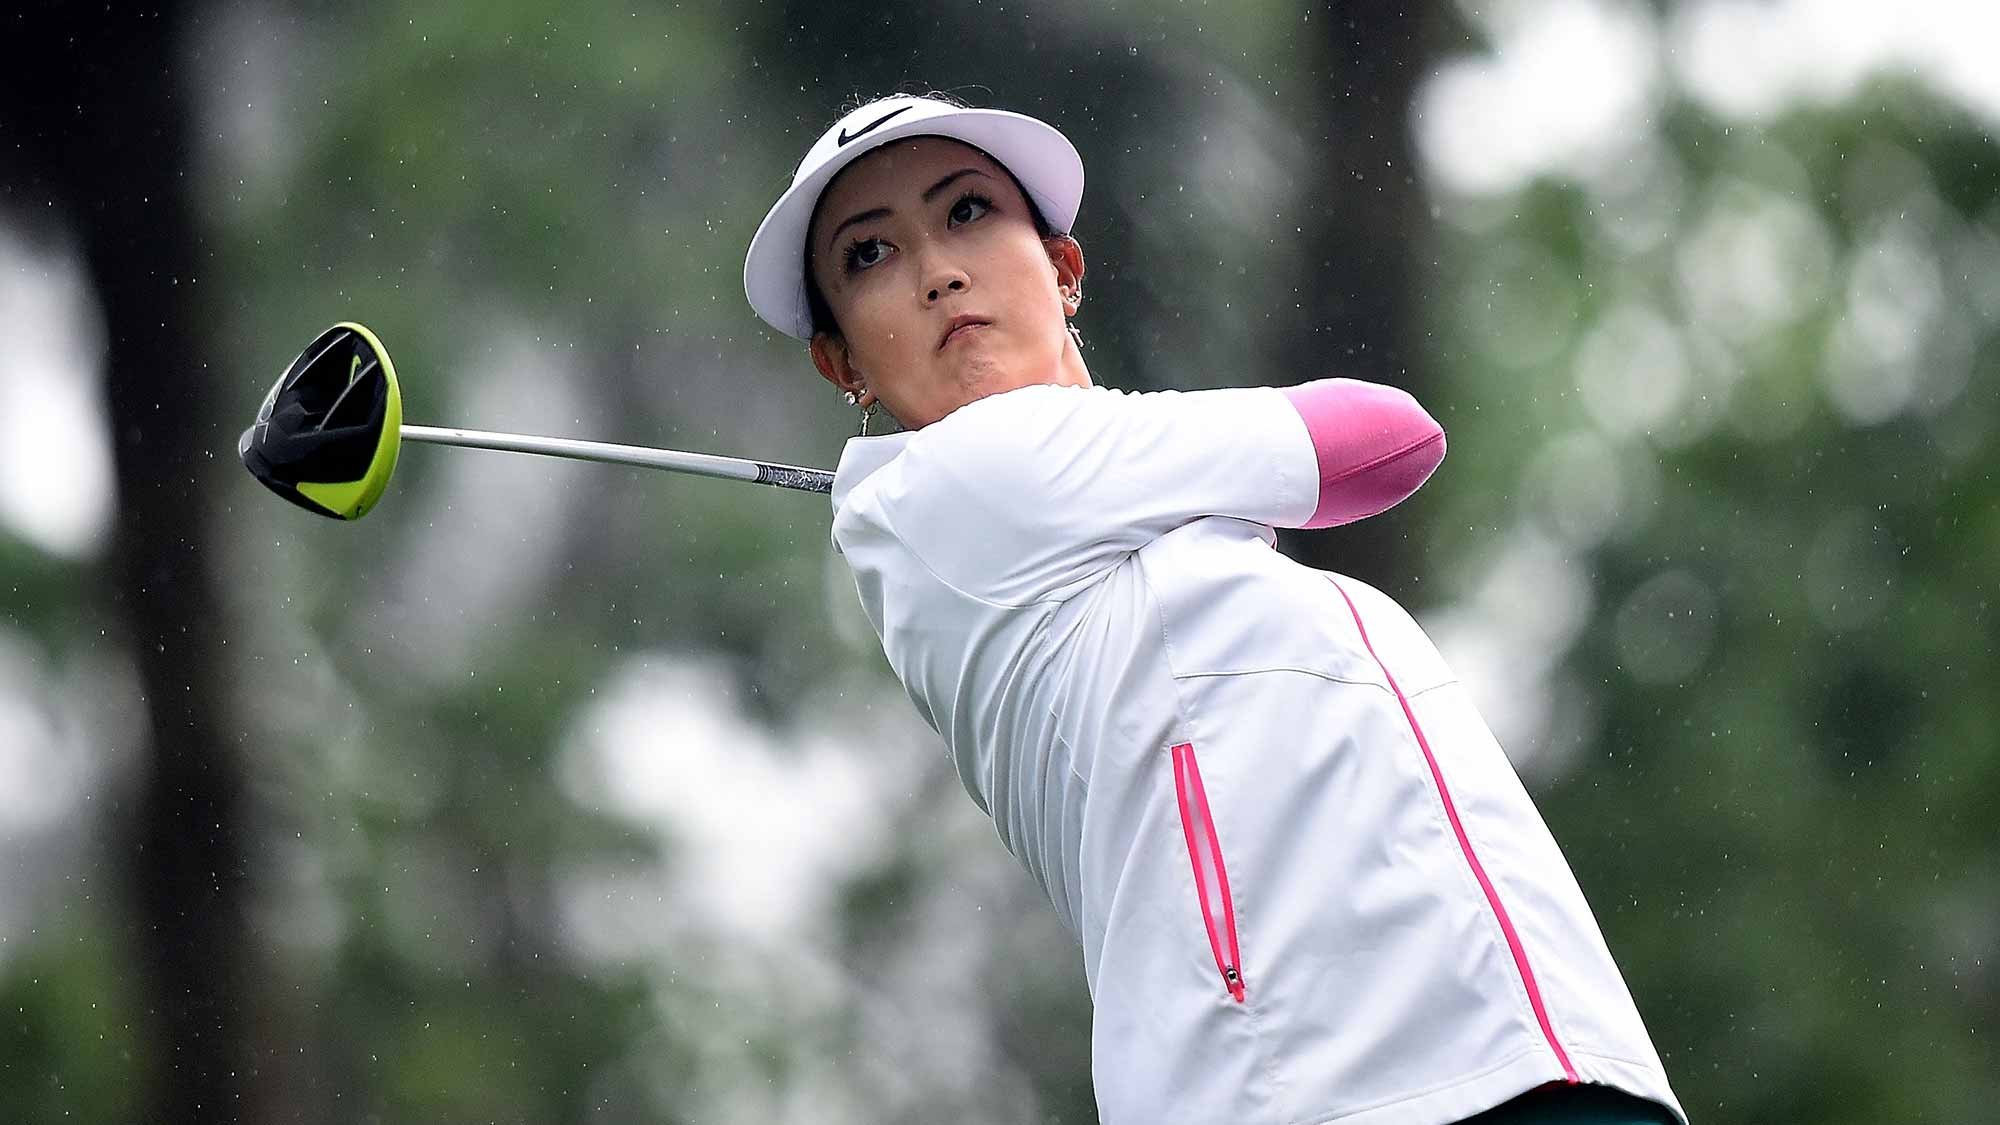 Michelle Wie of the United States plays the shot during the second round of 2015 Fubon LPGA Taiwan Championship at Miramar Golf Country Club